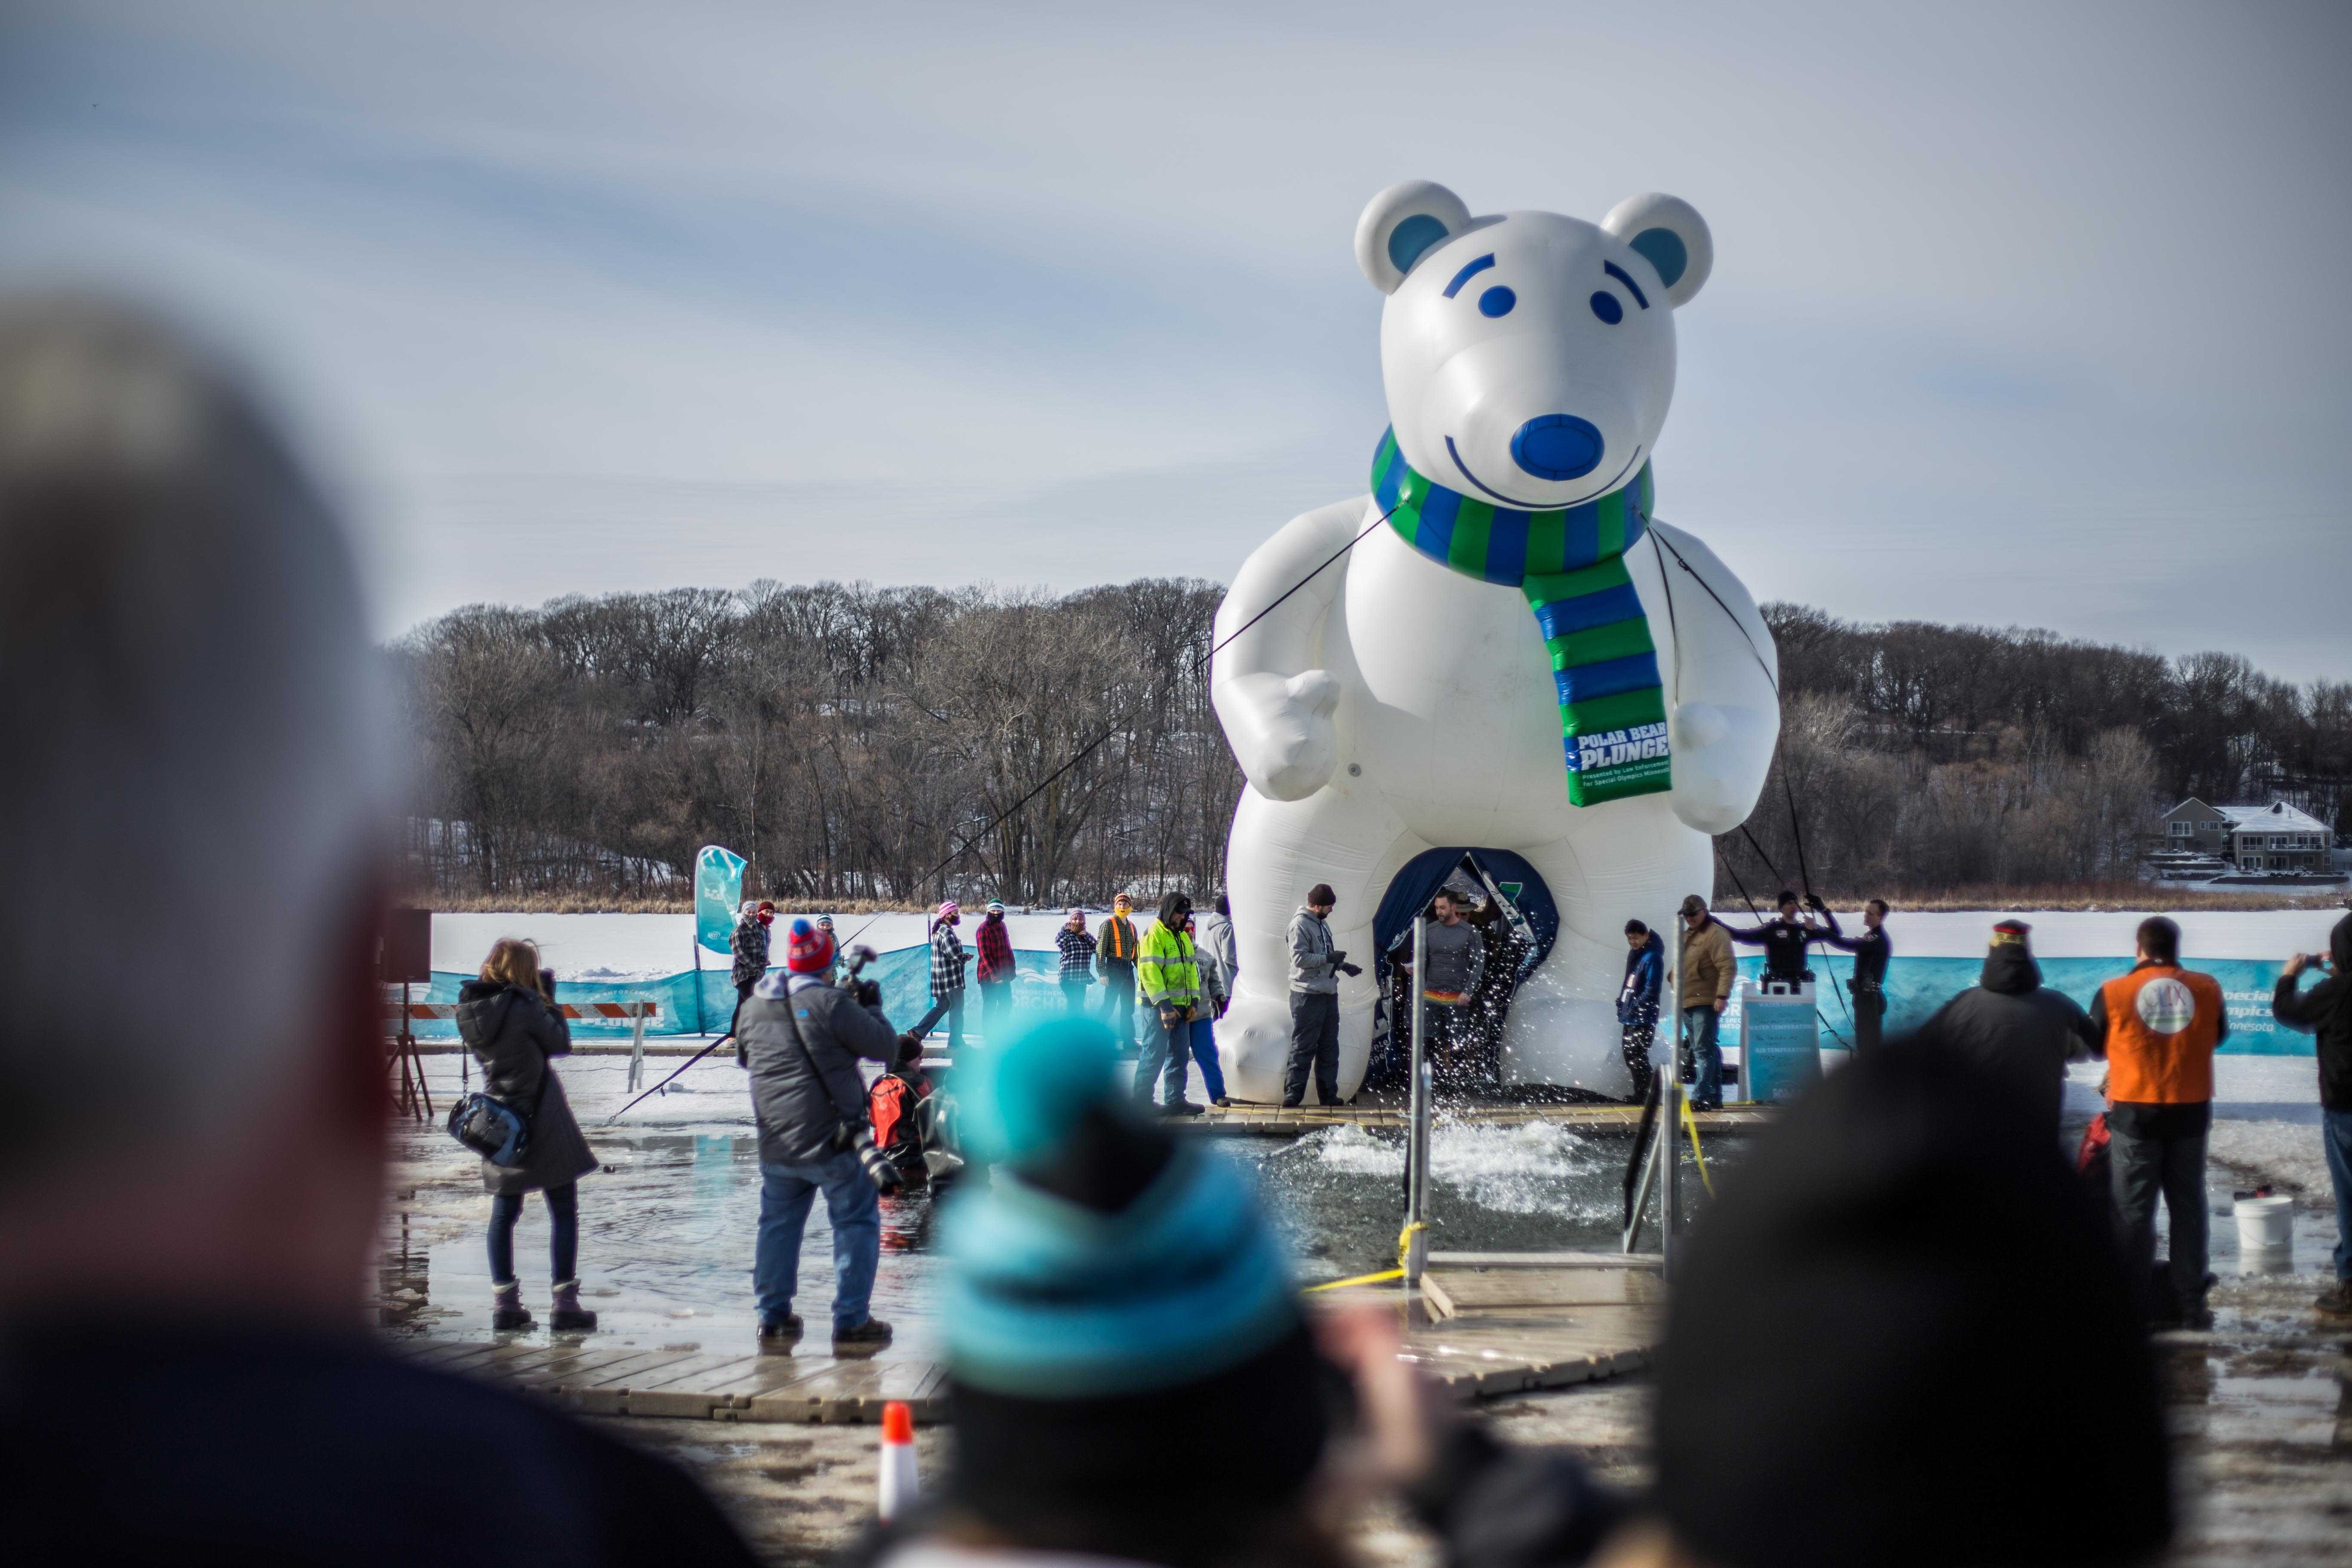 Brave the cold: Polar Plunge participants jump in the near-freezing water to benefit multiple charities Feb. 6 in Maple Grove. Charities include the Special Olympics.